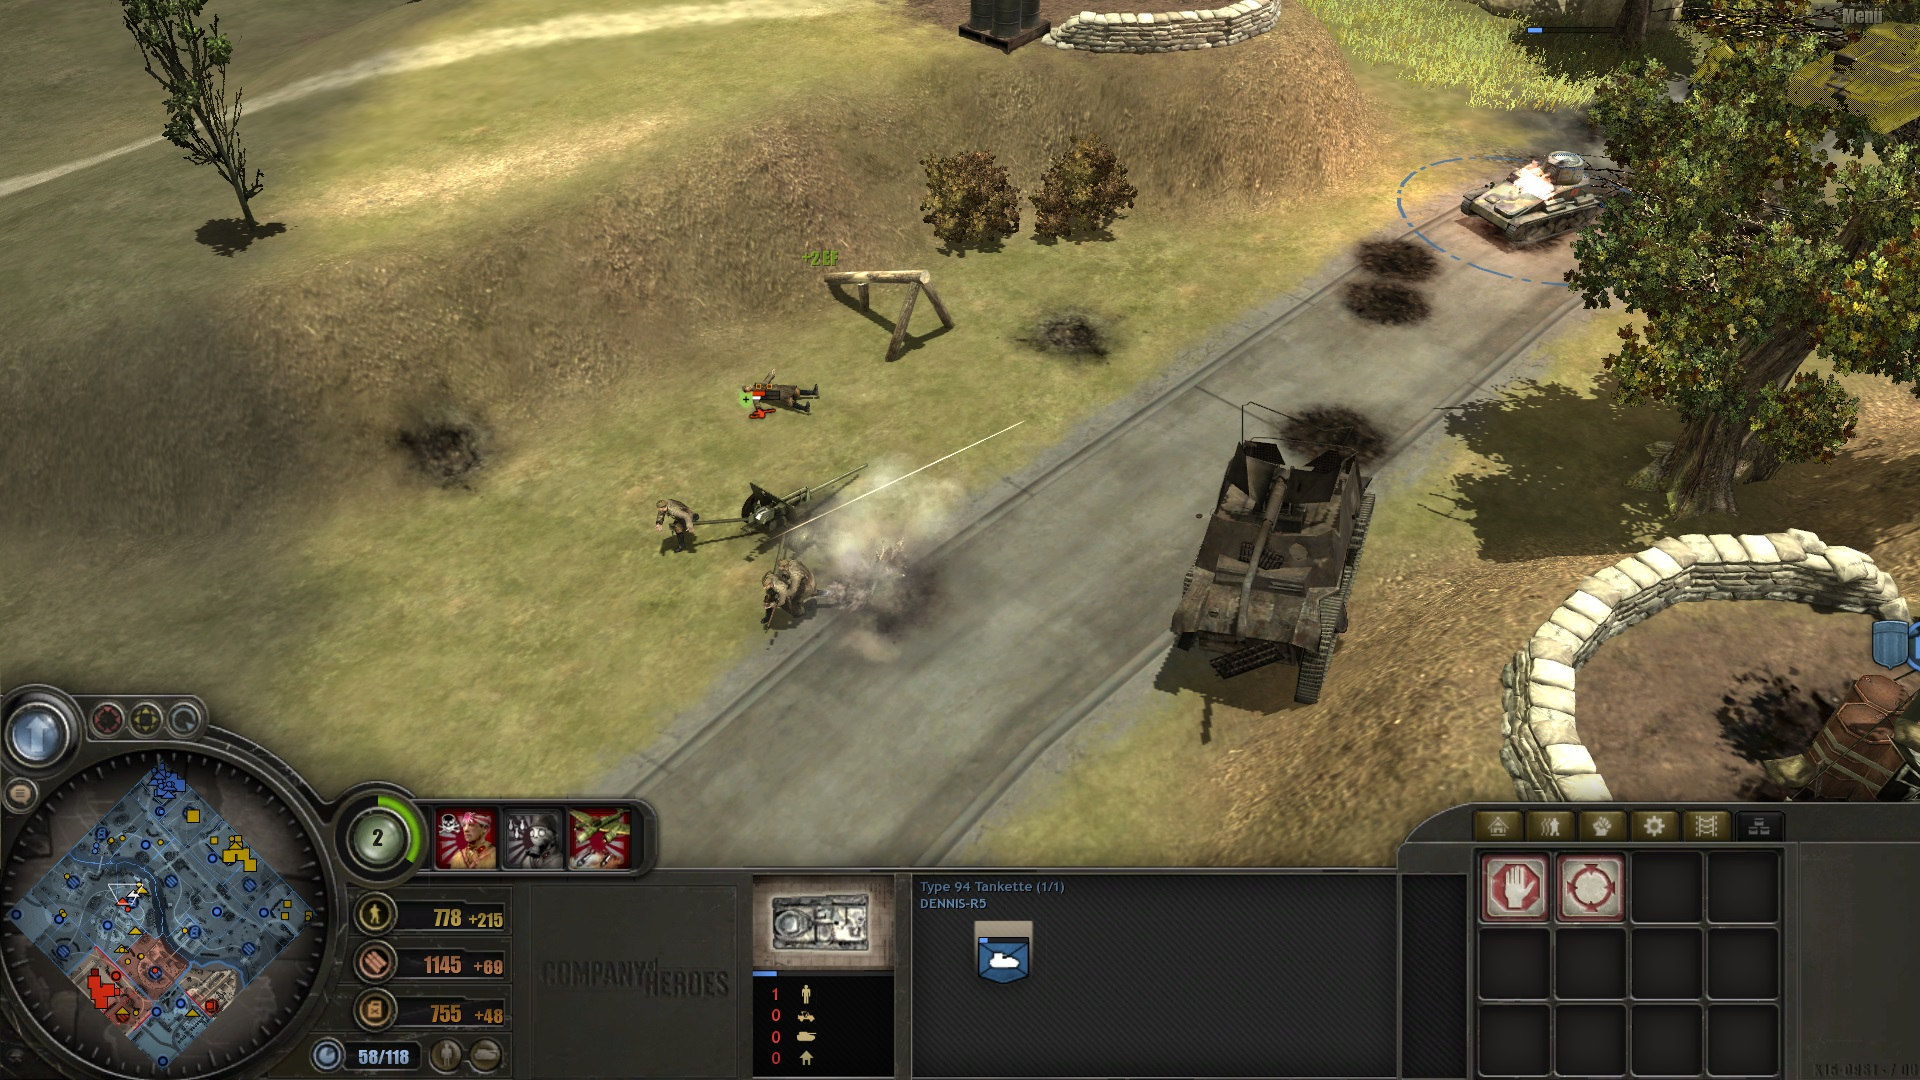 Japan Type 94 Fights Against Russian Zis 2 Image Coh Far Eastern Blitzkrieg Front Mod Fusion For Company Of Heroes Mod Db